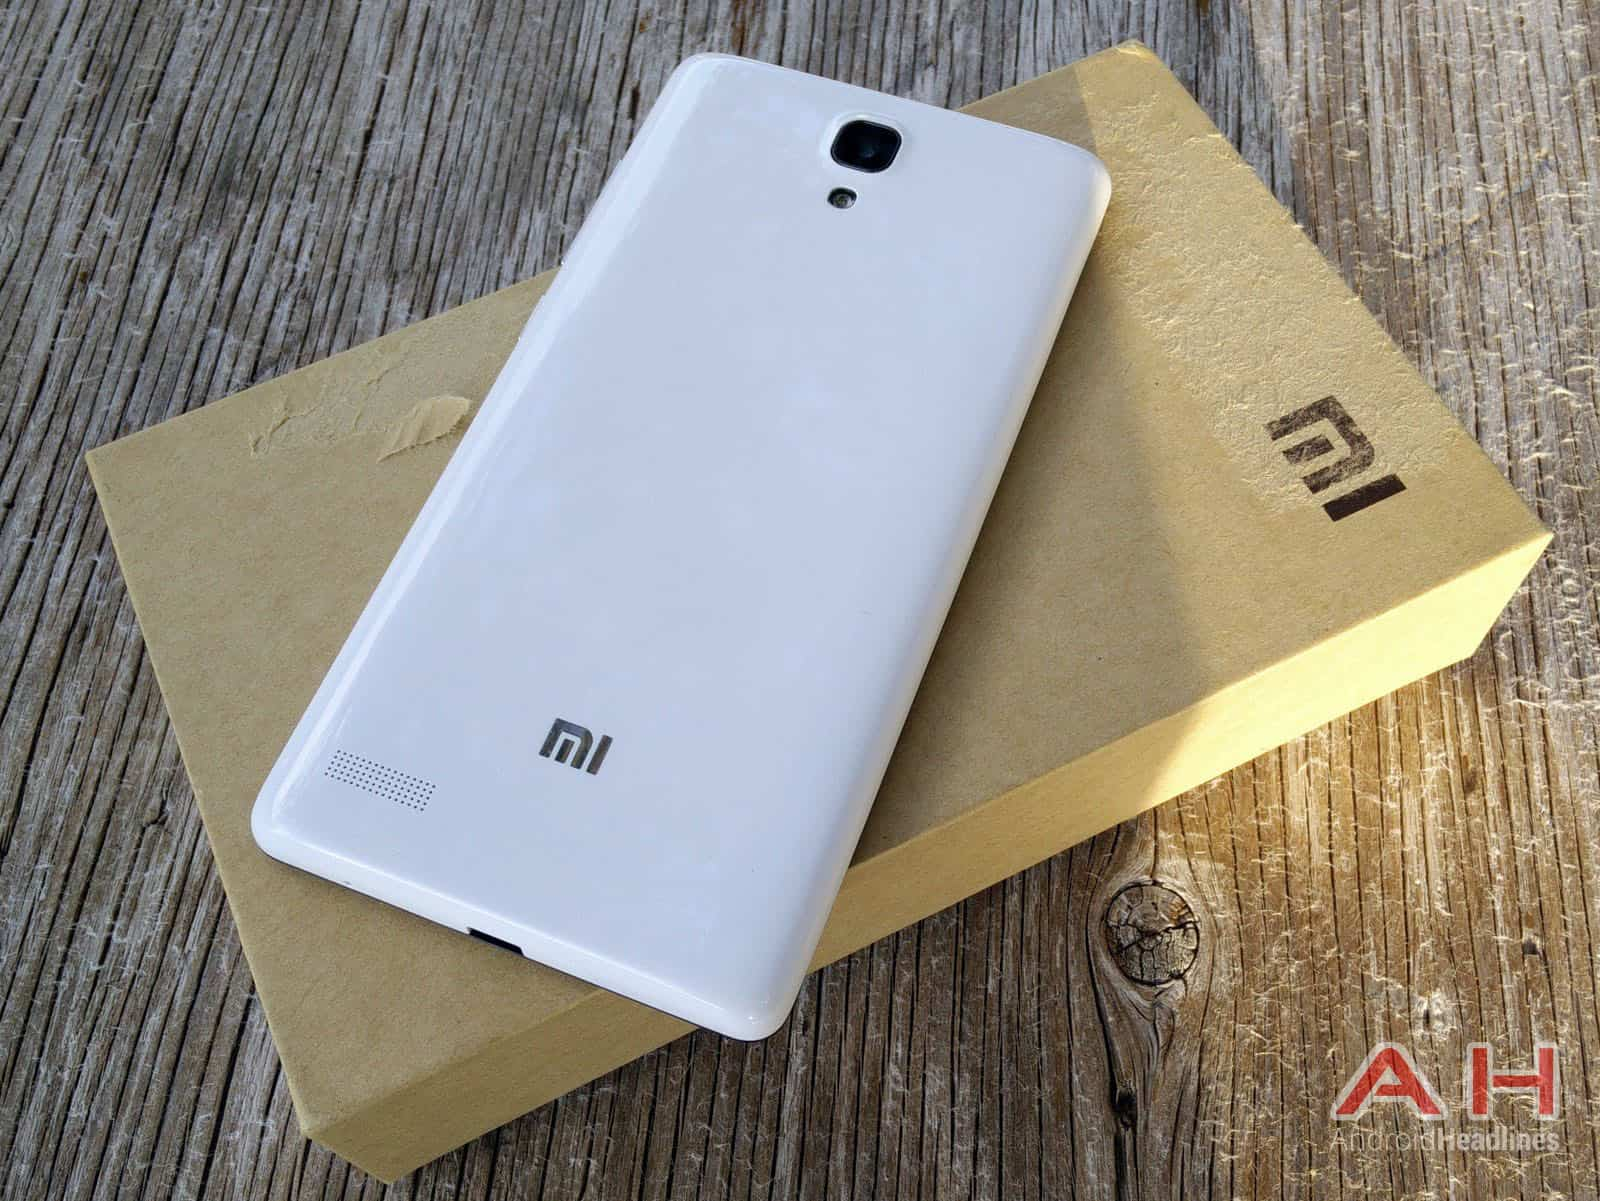 xiaomi redmi note lte unboxing and first impressions